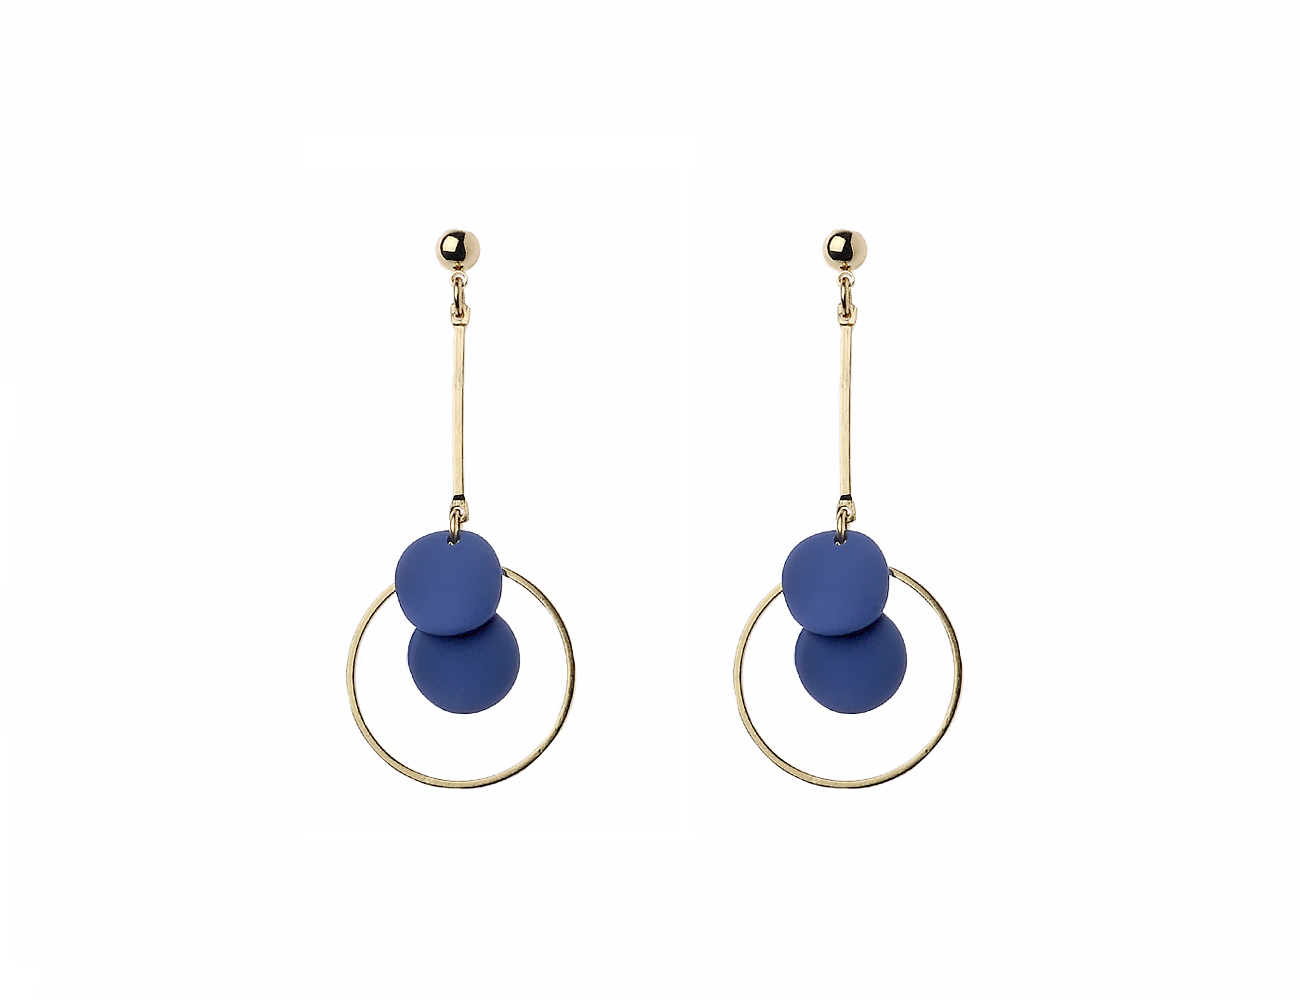 Gold Stick And Circle Earring With Wavy Blue Disc Details